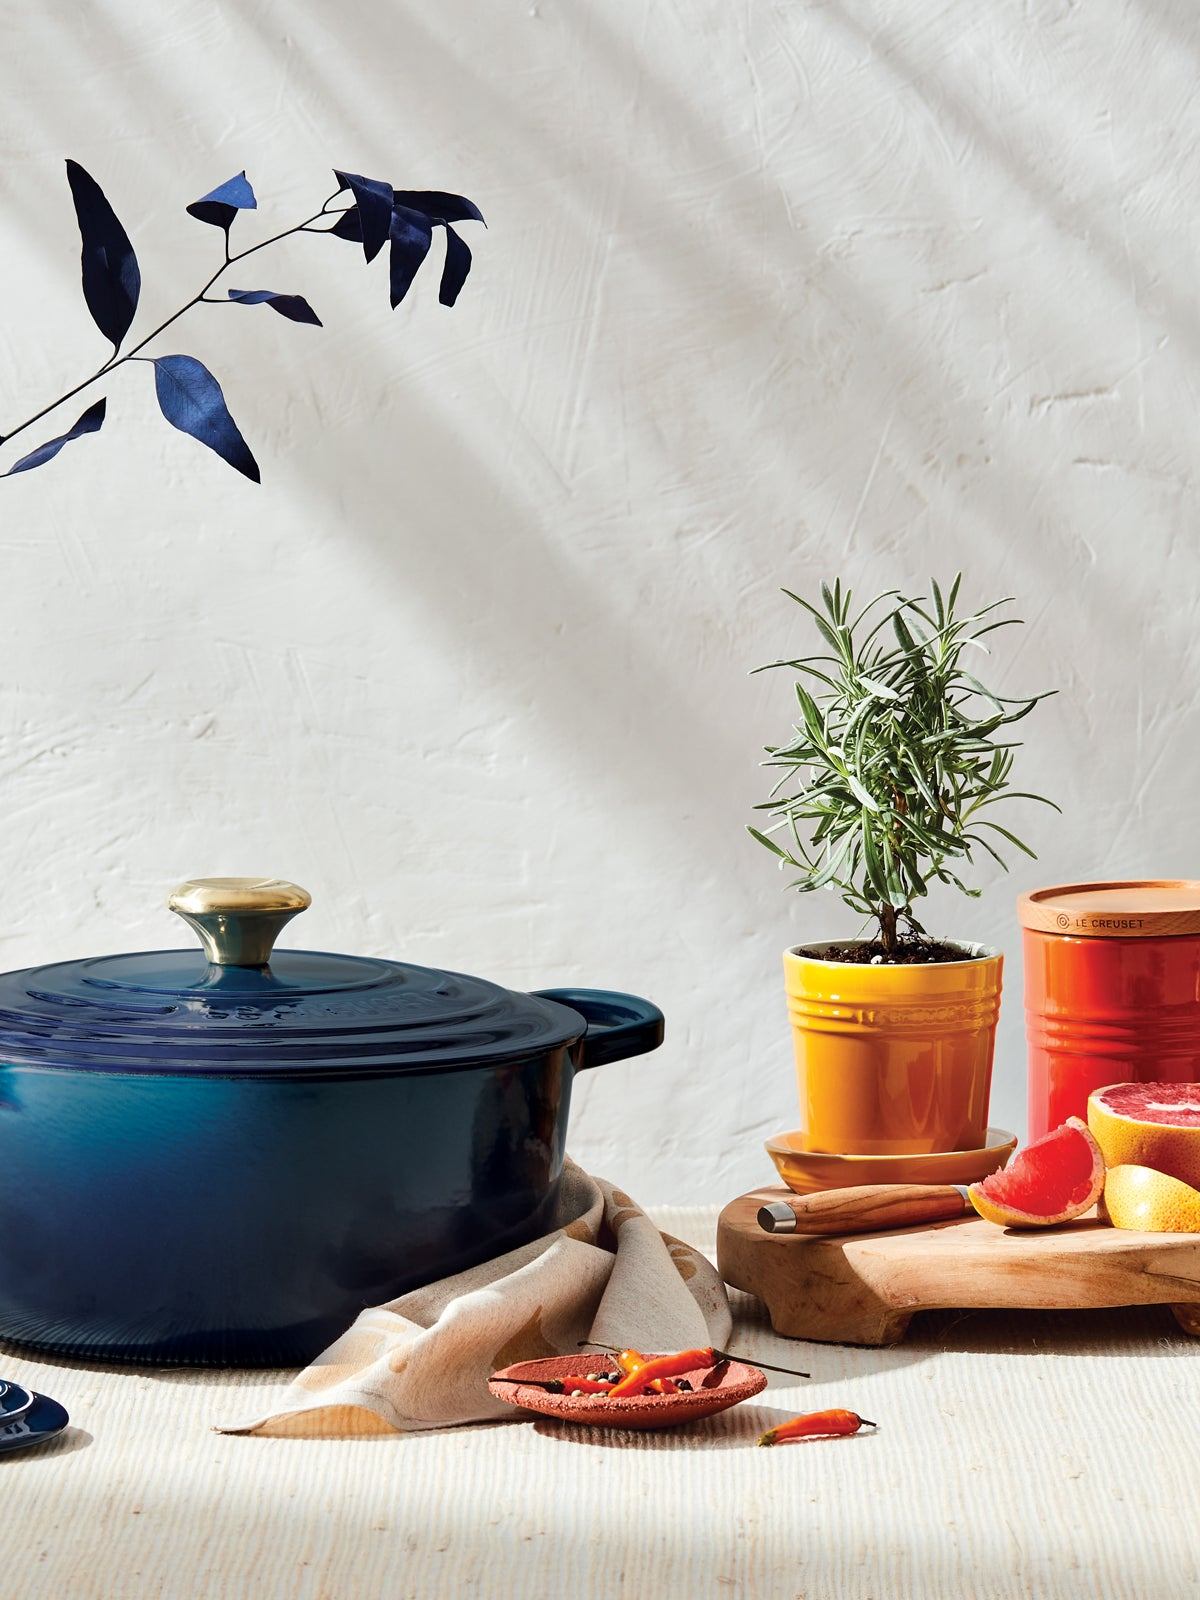 We Asked a Le Creuset Insider: What Colors Are You Betting On for 2021?